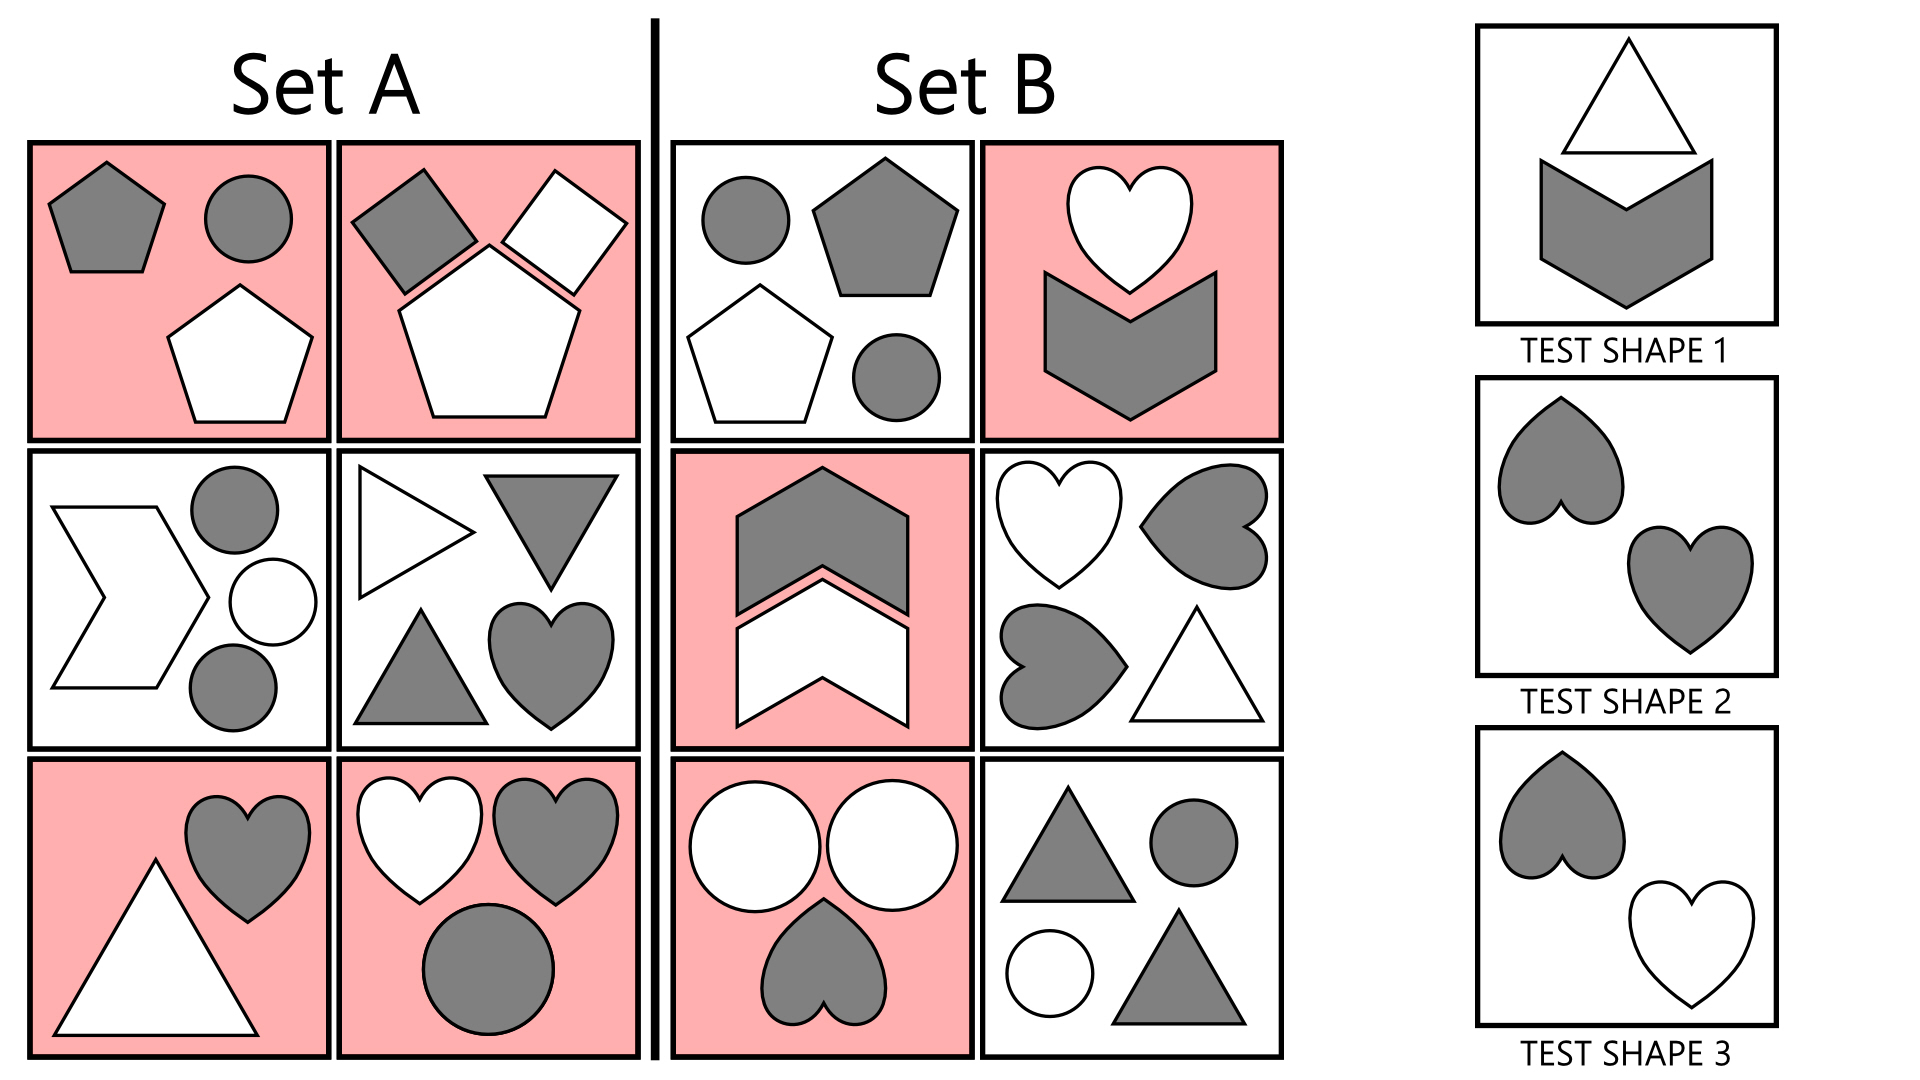 A sample question with the 'simpler' boxes for each set highlighted in red